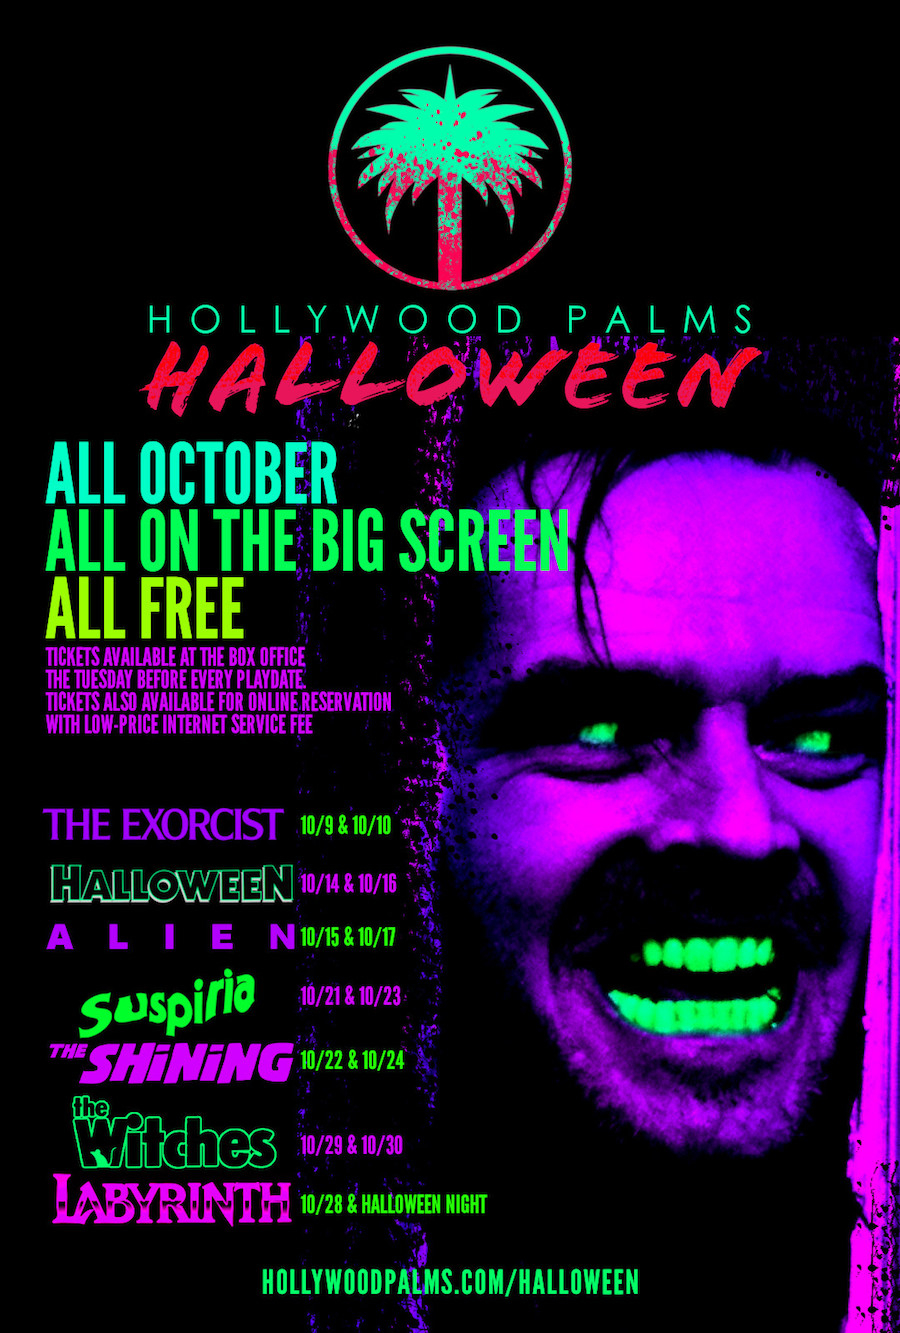 Hollywood Palms Halloween